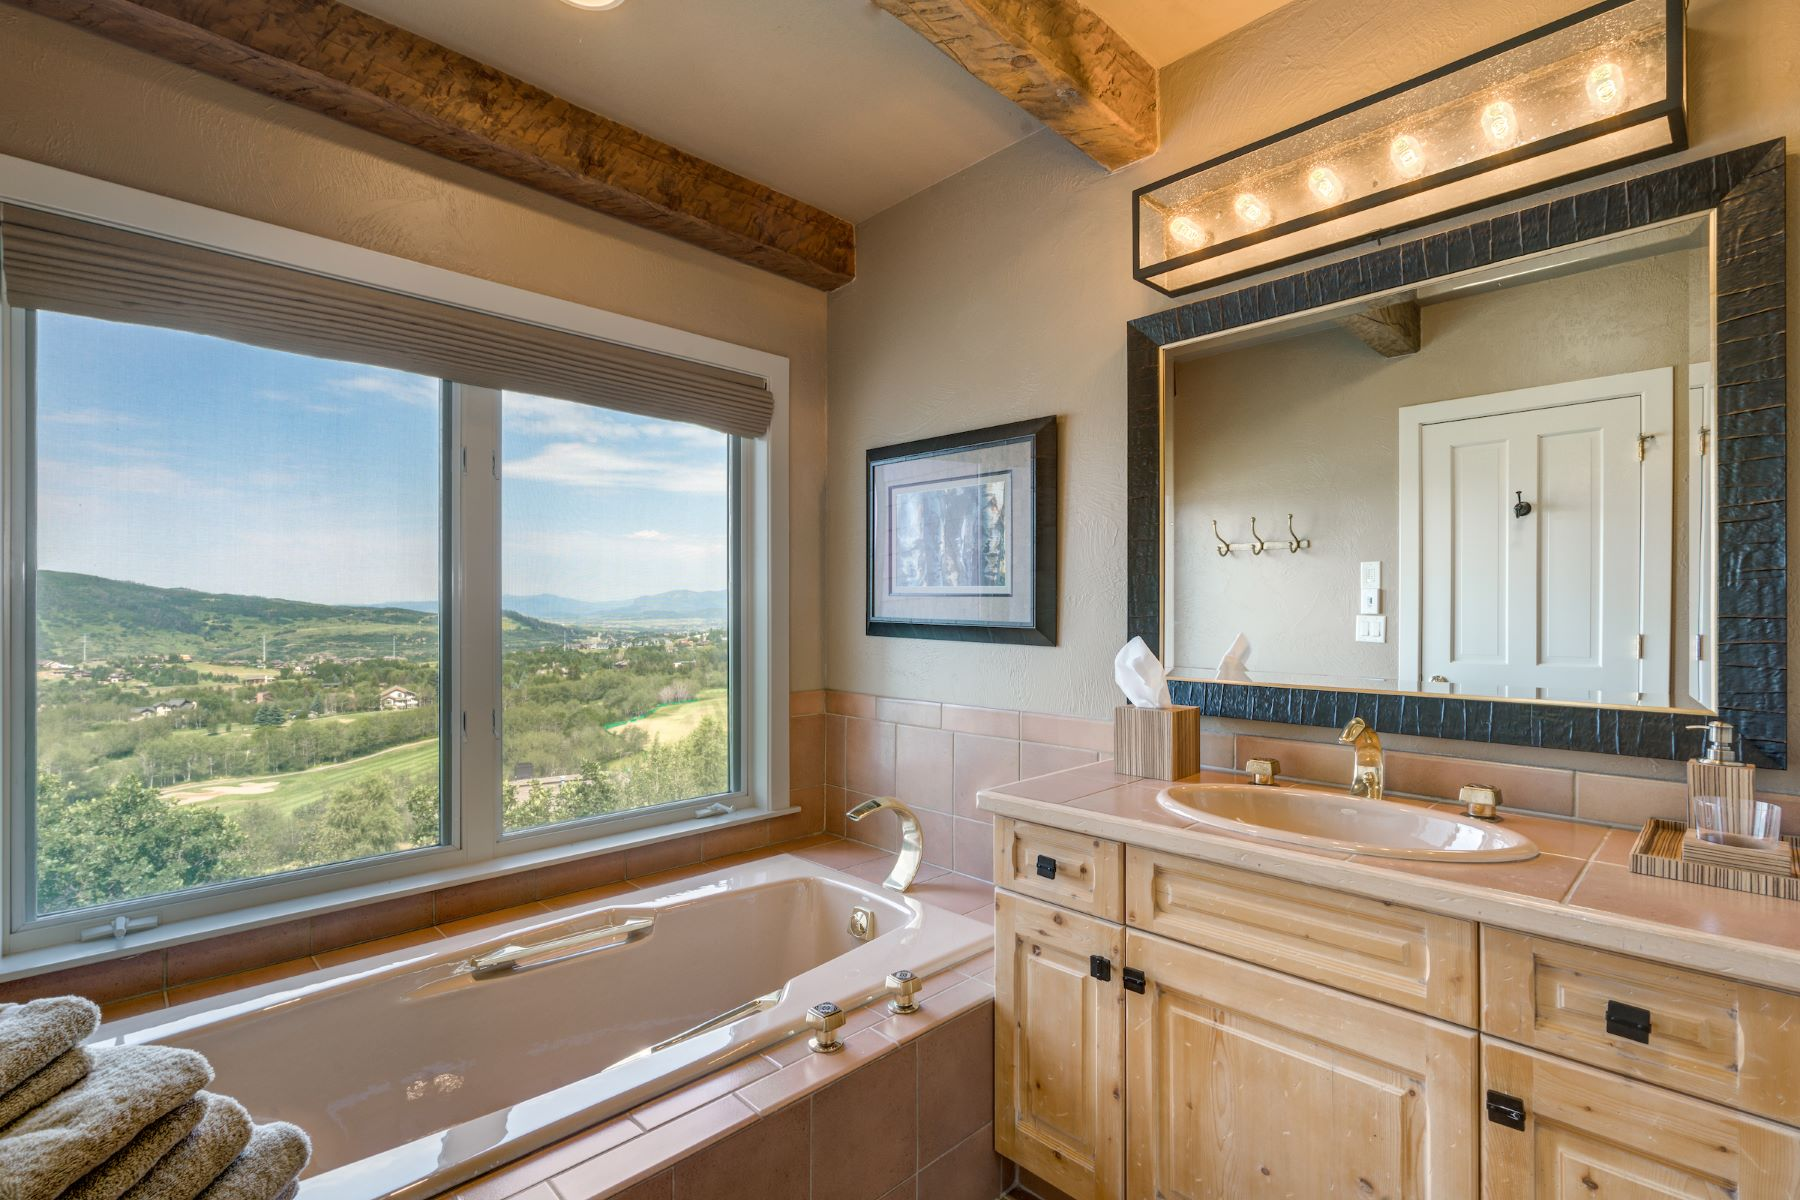 Additional photo for property listing at 5 BD Home Overlooking the Rollingstone Golf Course 1295 Overlook Dr Steamboat Springs, Colorado 80487 United States